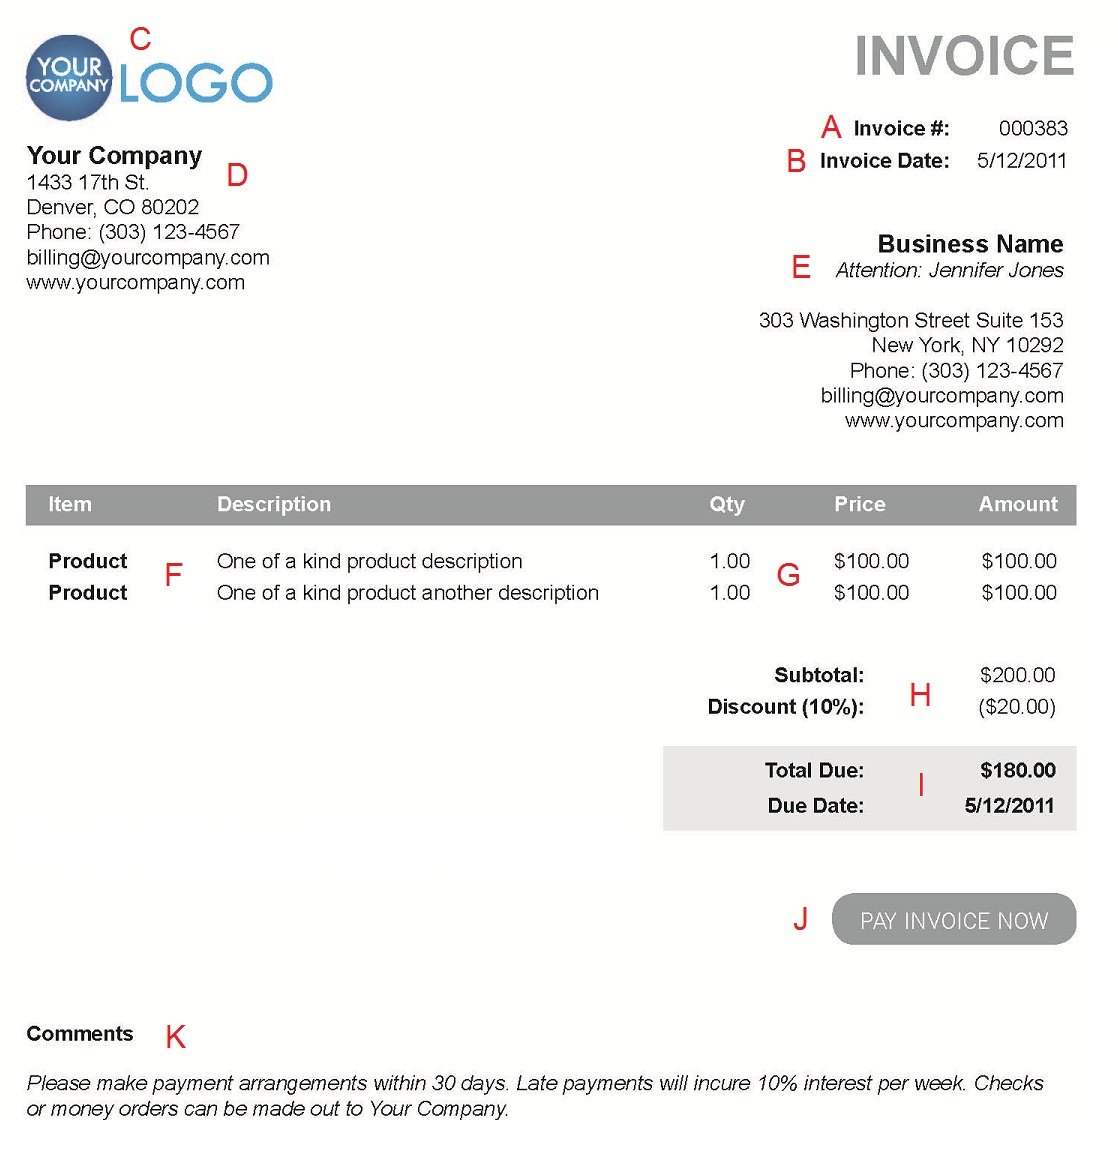 Ebitus  Picturesque The  Different Sections Of An Electronic Payment Invoice With Extraordinary A  With Delightful Delivery Invoice Sample Also Invoice Software For Mac Free In Addition Ford Fusion Invoice And Sample Purchase Invoice As Well As Late Payment Invoice Additionally Pi Proforma Invoice From Paysimplecom With Ebitus  Extraordinary The  Different Sections Of An Electronic Payment Invoice With Delightful A  And Picturesque Delivery Invoice Sample Also Invoice Software For Mac Free In Addition Ford Fusion Invoice From Paysimplecom